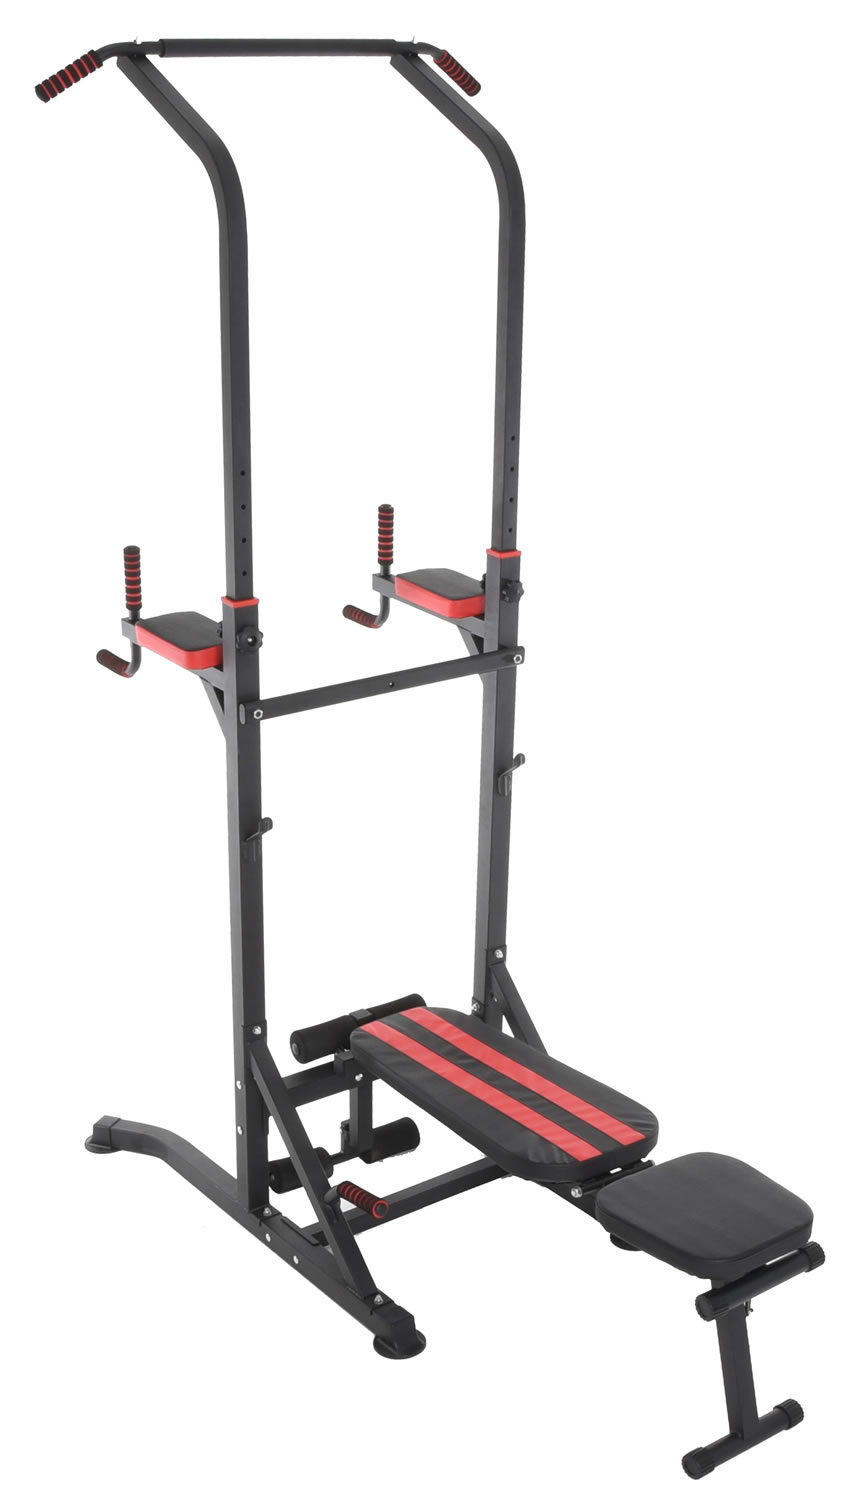 Conquer Power Tower Home Gym Adjustable Multi Function